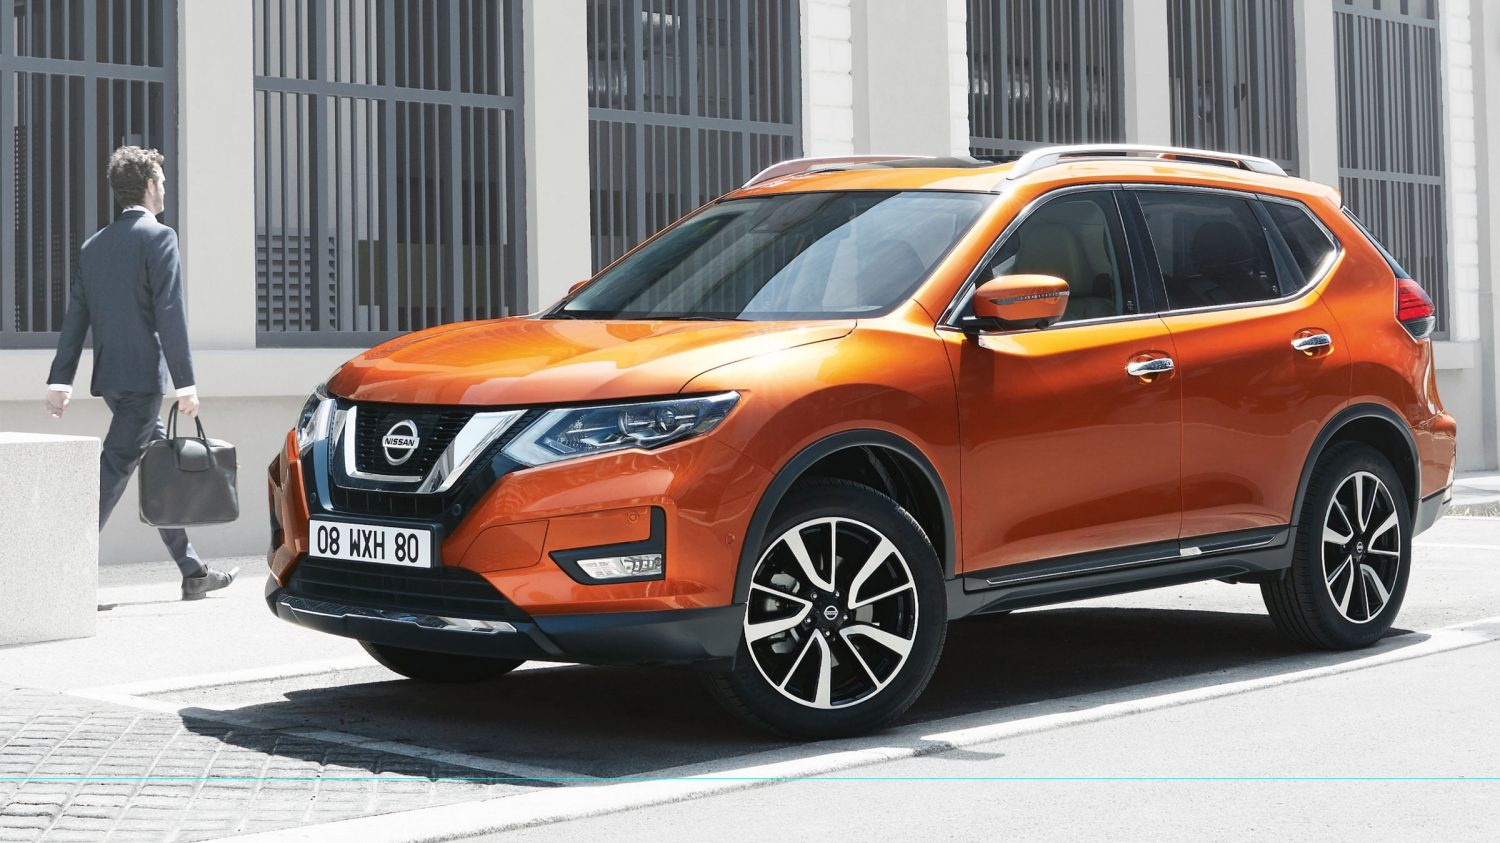 nouveau nissan x trail 2017 4x4 suv 7 places nissan. Black Bedroom Furniture Sets. Home Design Ideas